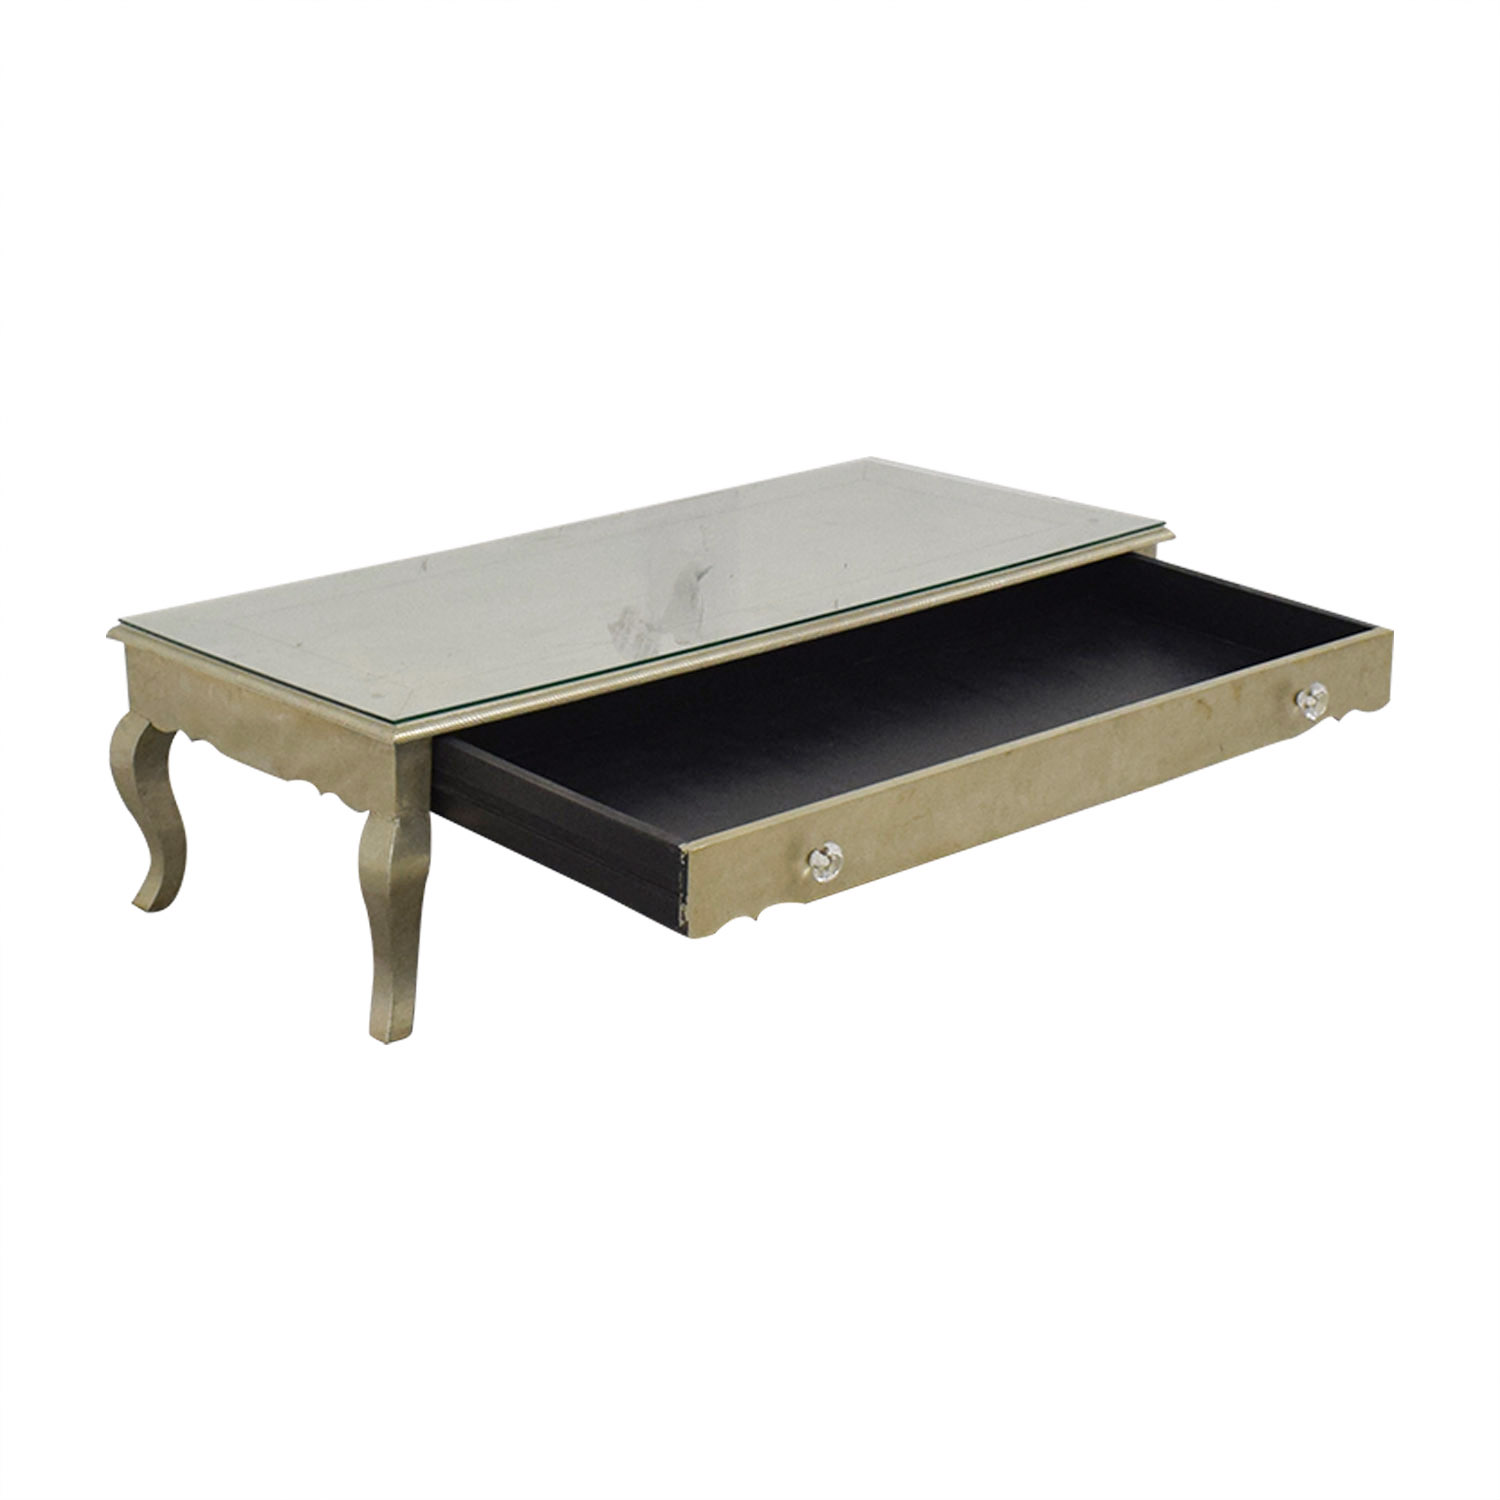 ABC Carpet & Home ABC Carpet & Home Coffee Table metal